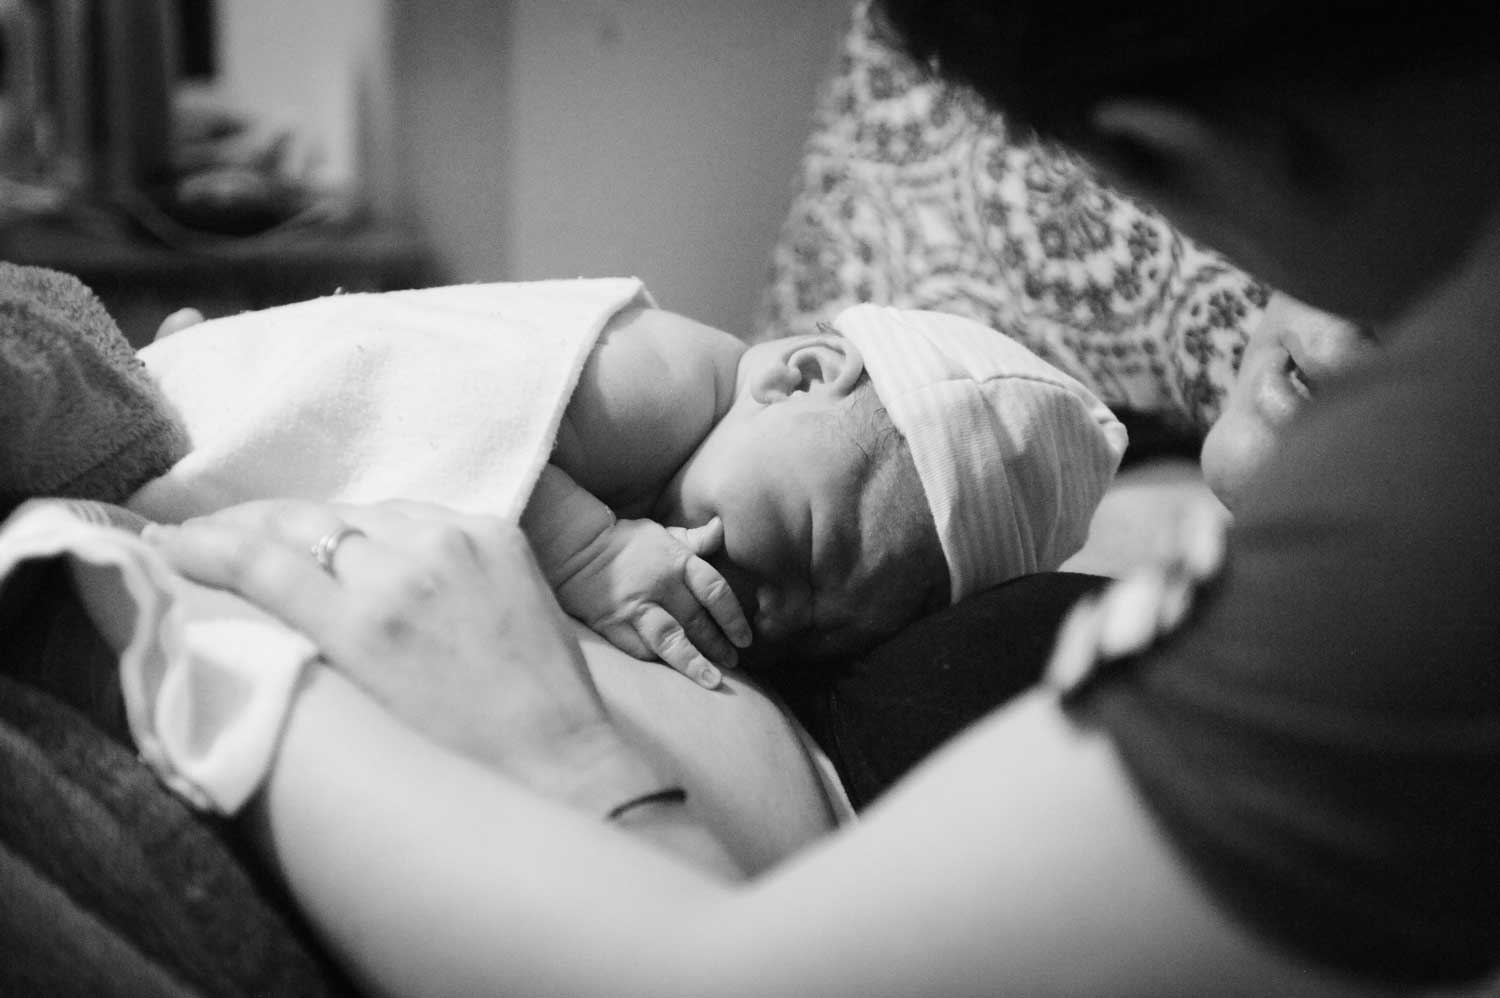 Sleeping newborn with hat and blanket resting on mother's stomach.